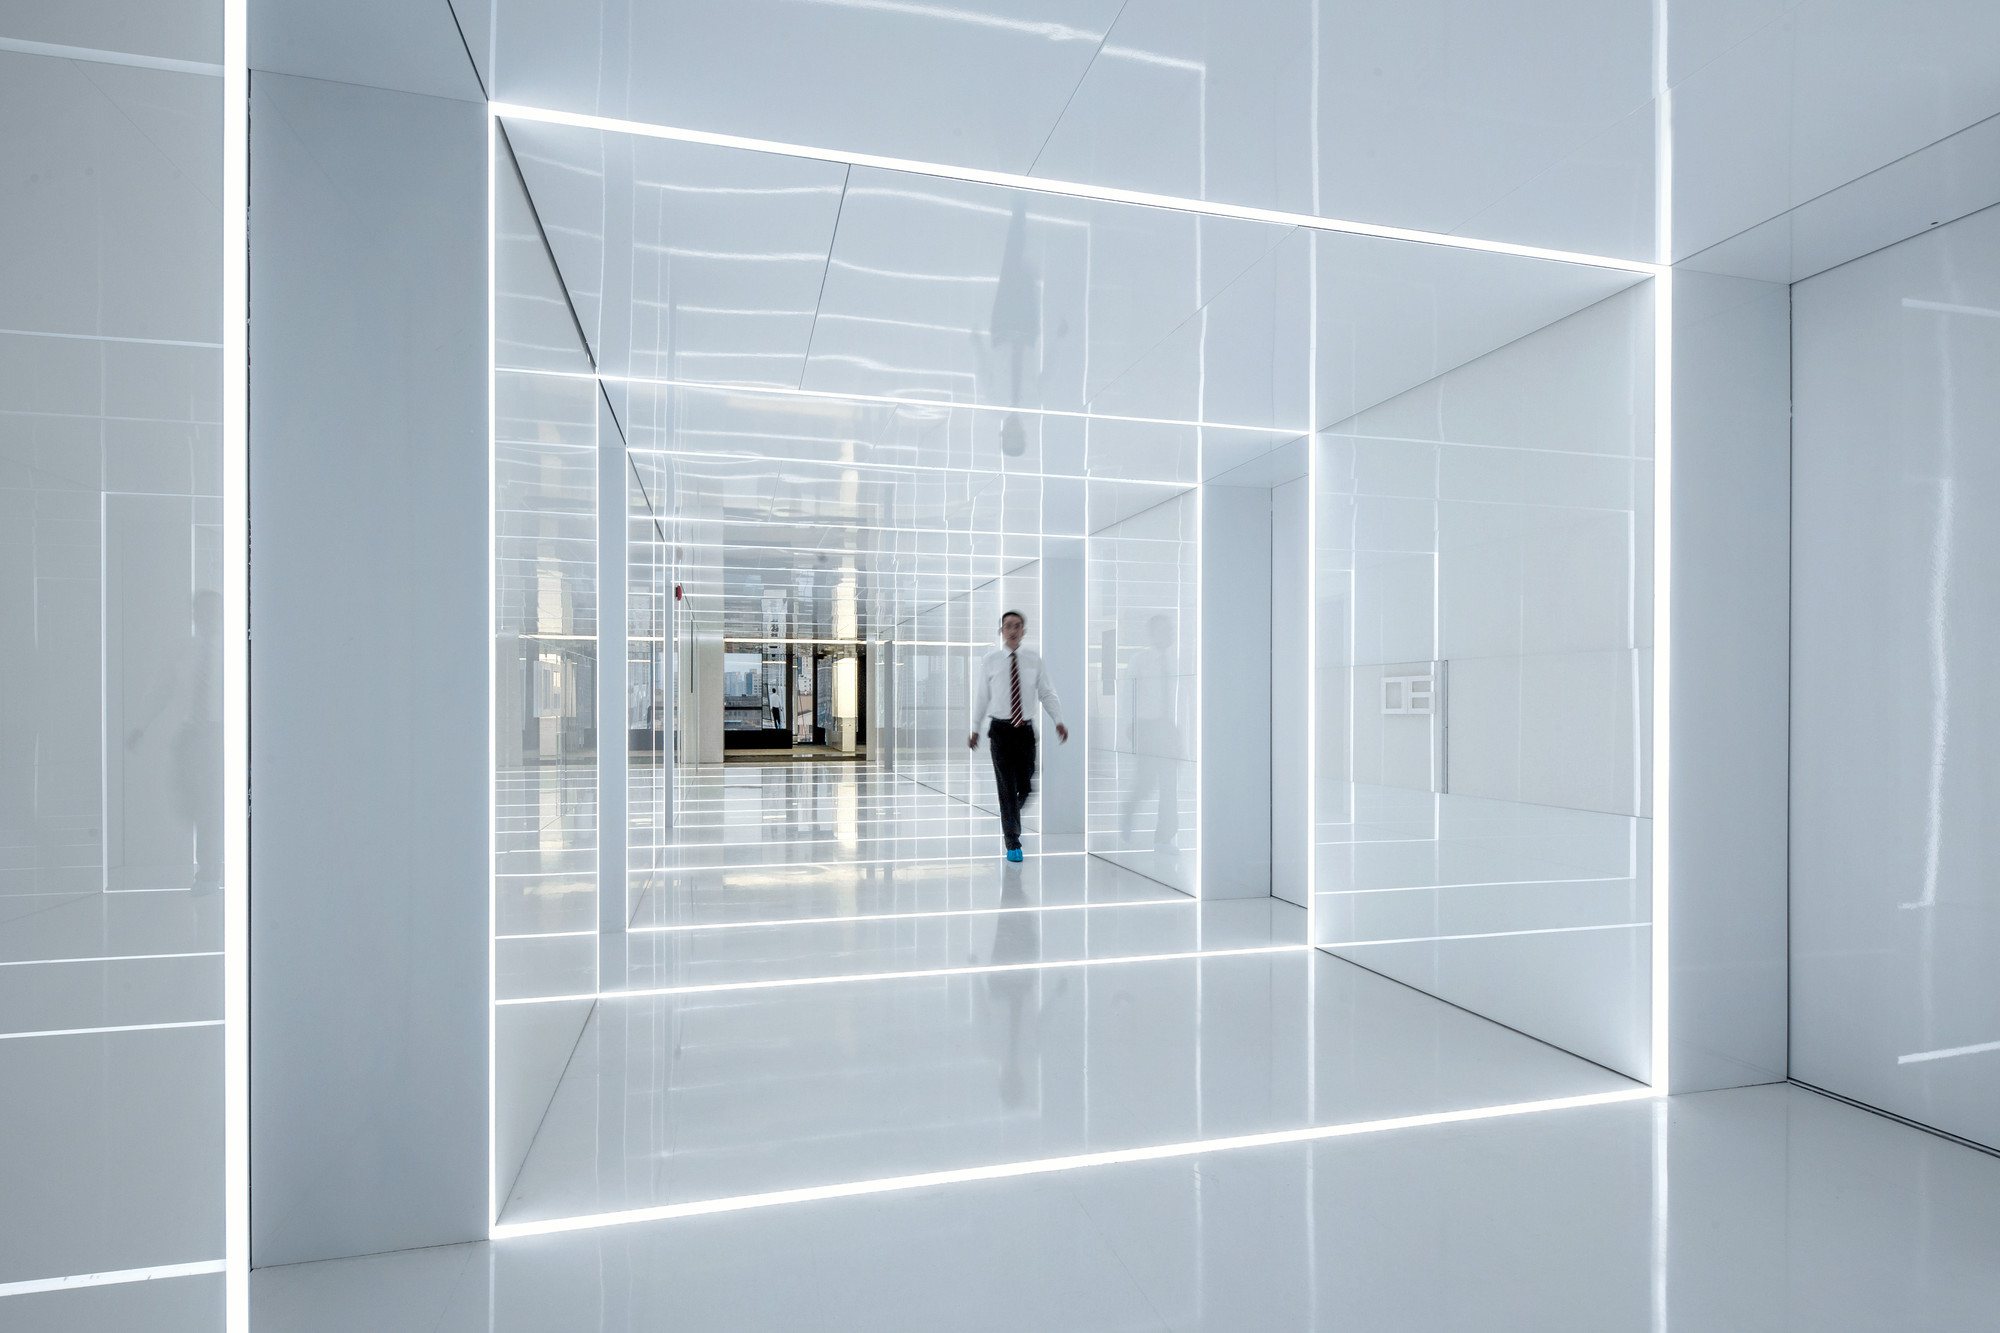 Glass office SOHO China / AIM Architecture, © Jerry Yin